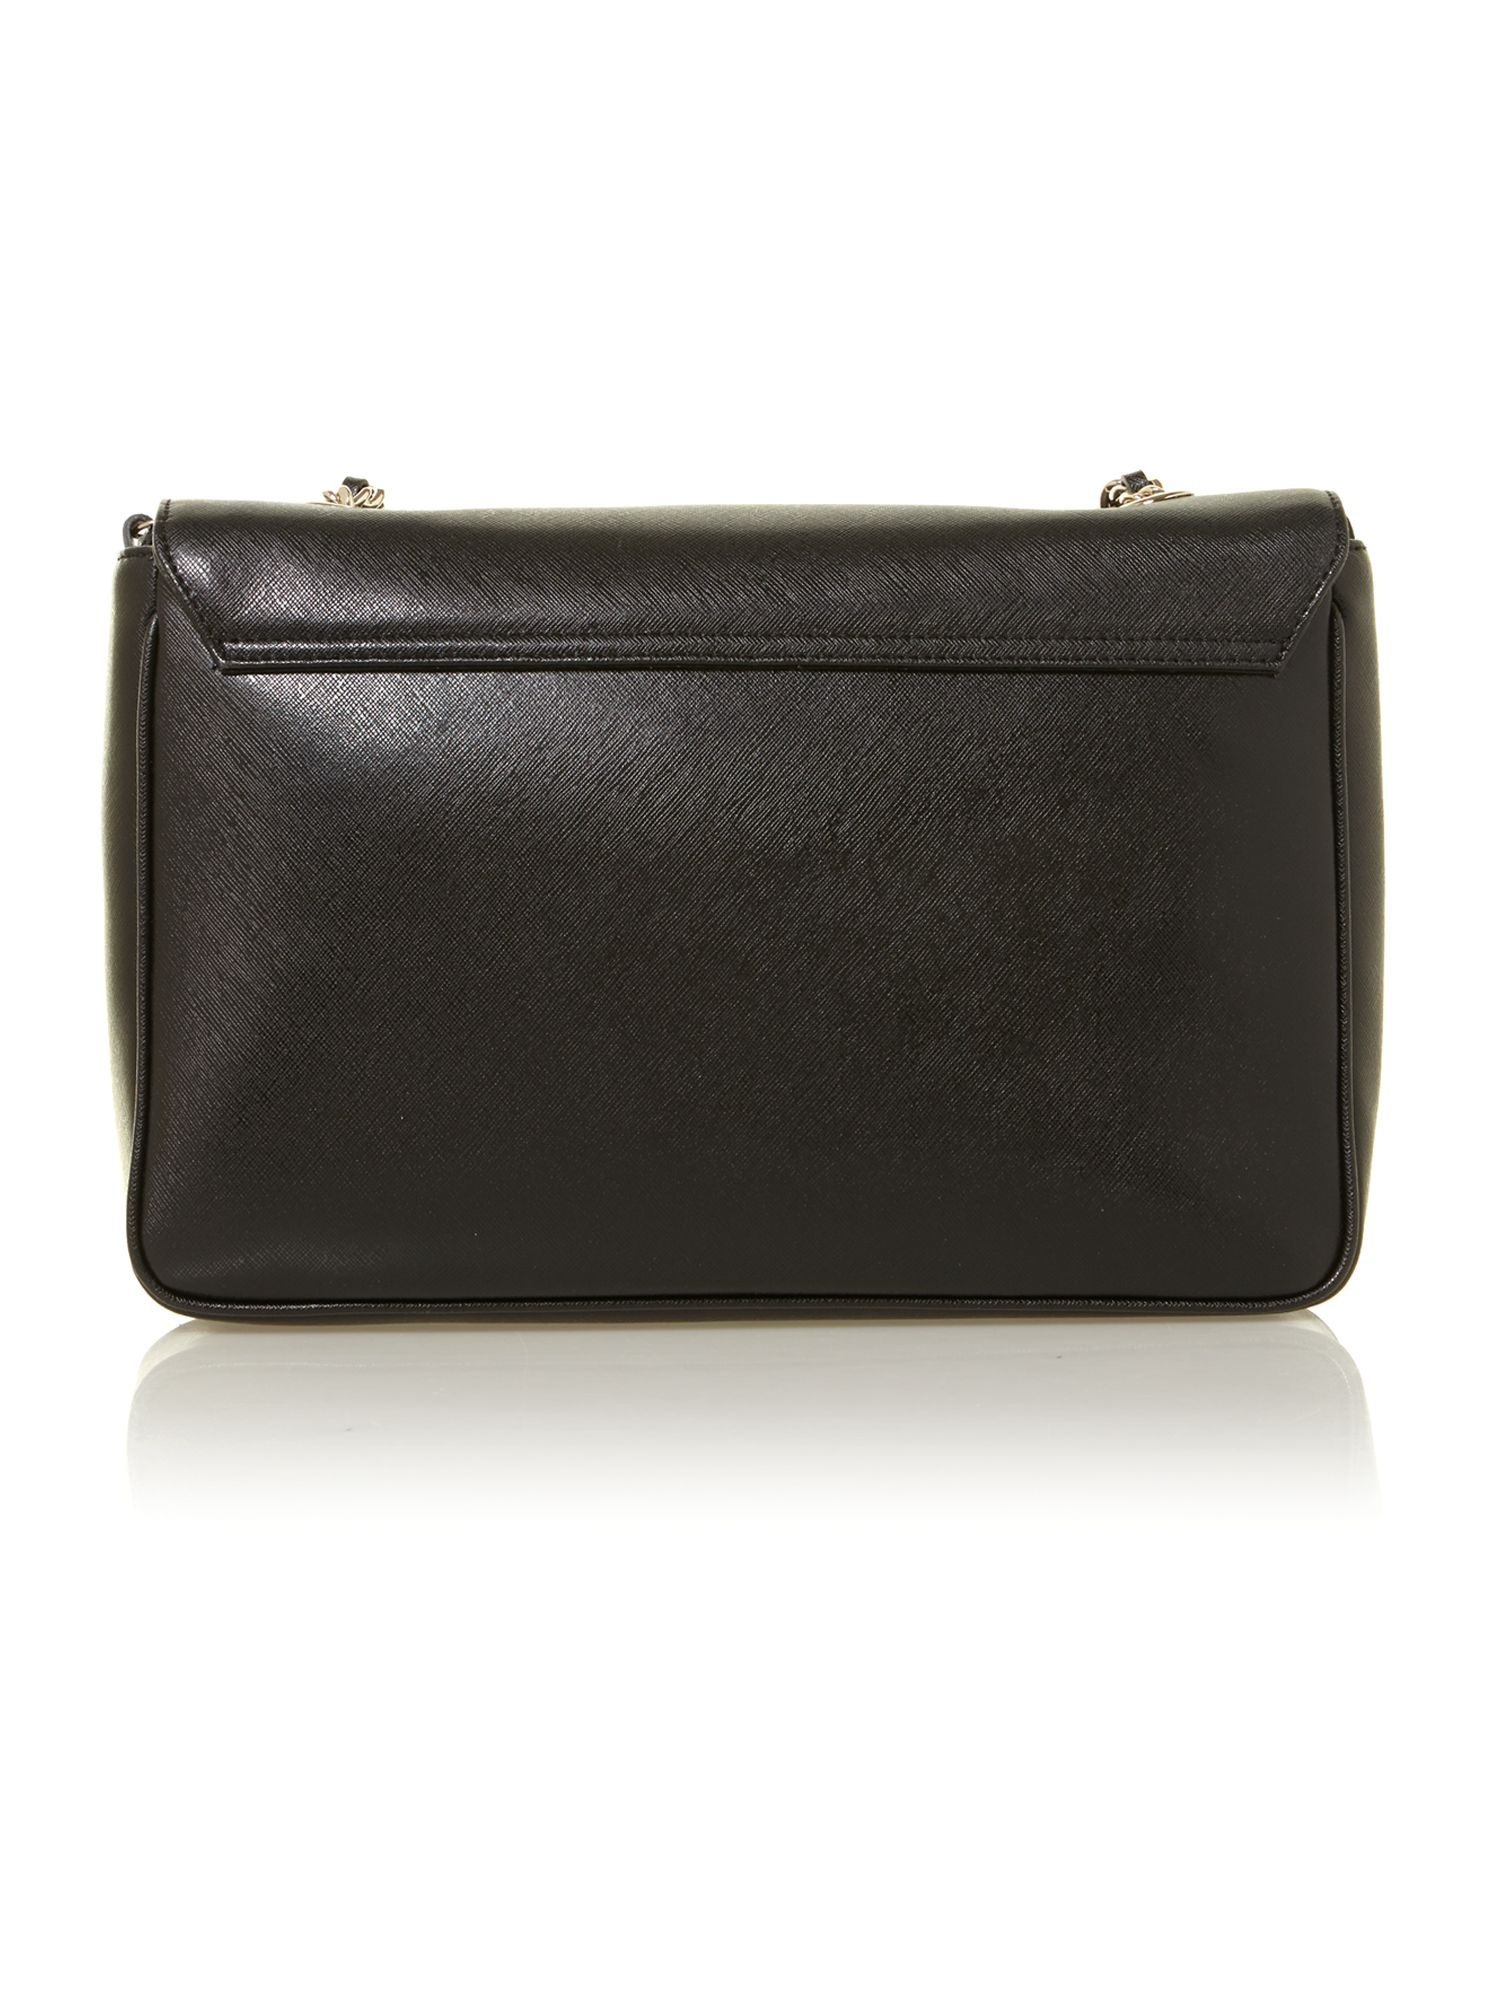 Margo black large shoulder bag